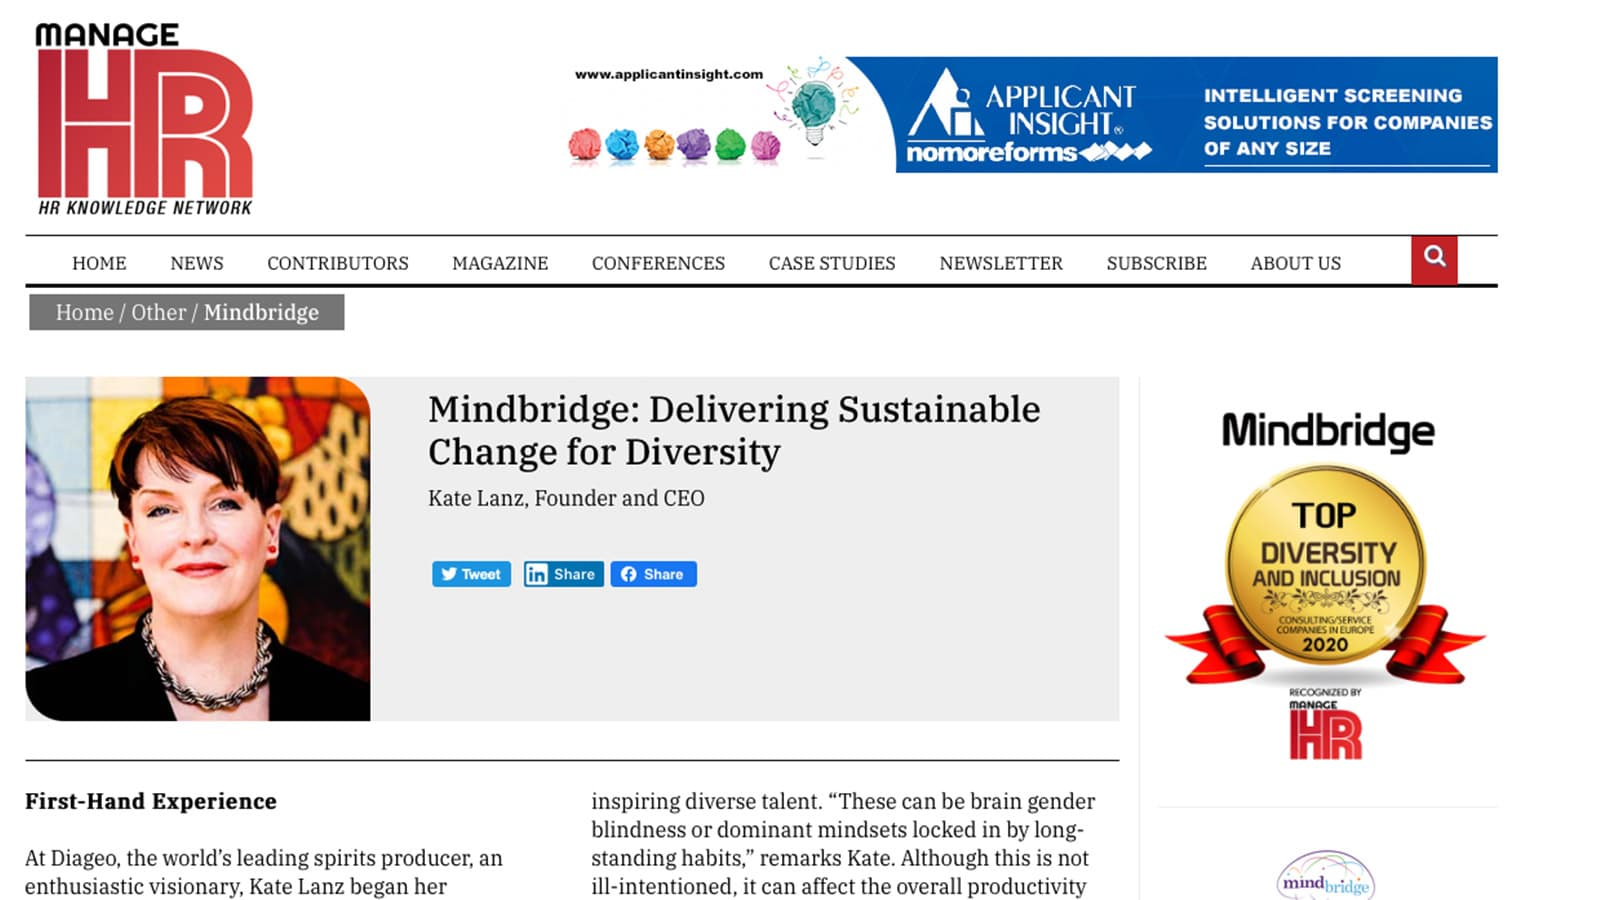 Mindbridge in Manage HR magazine